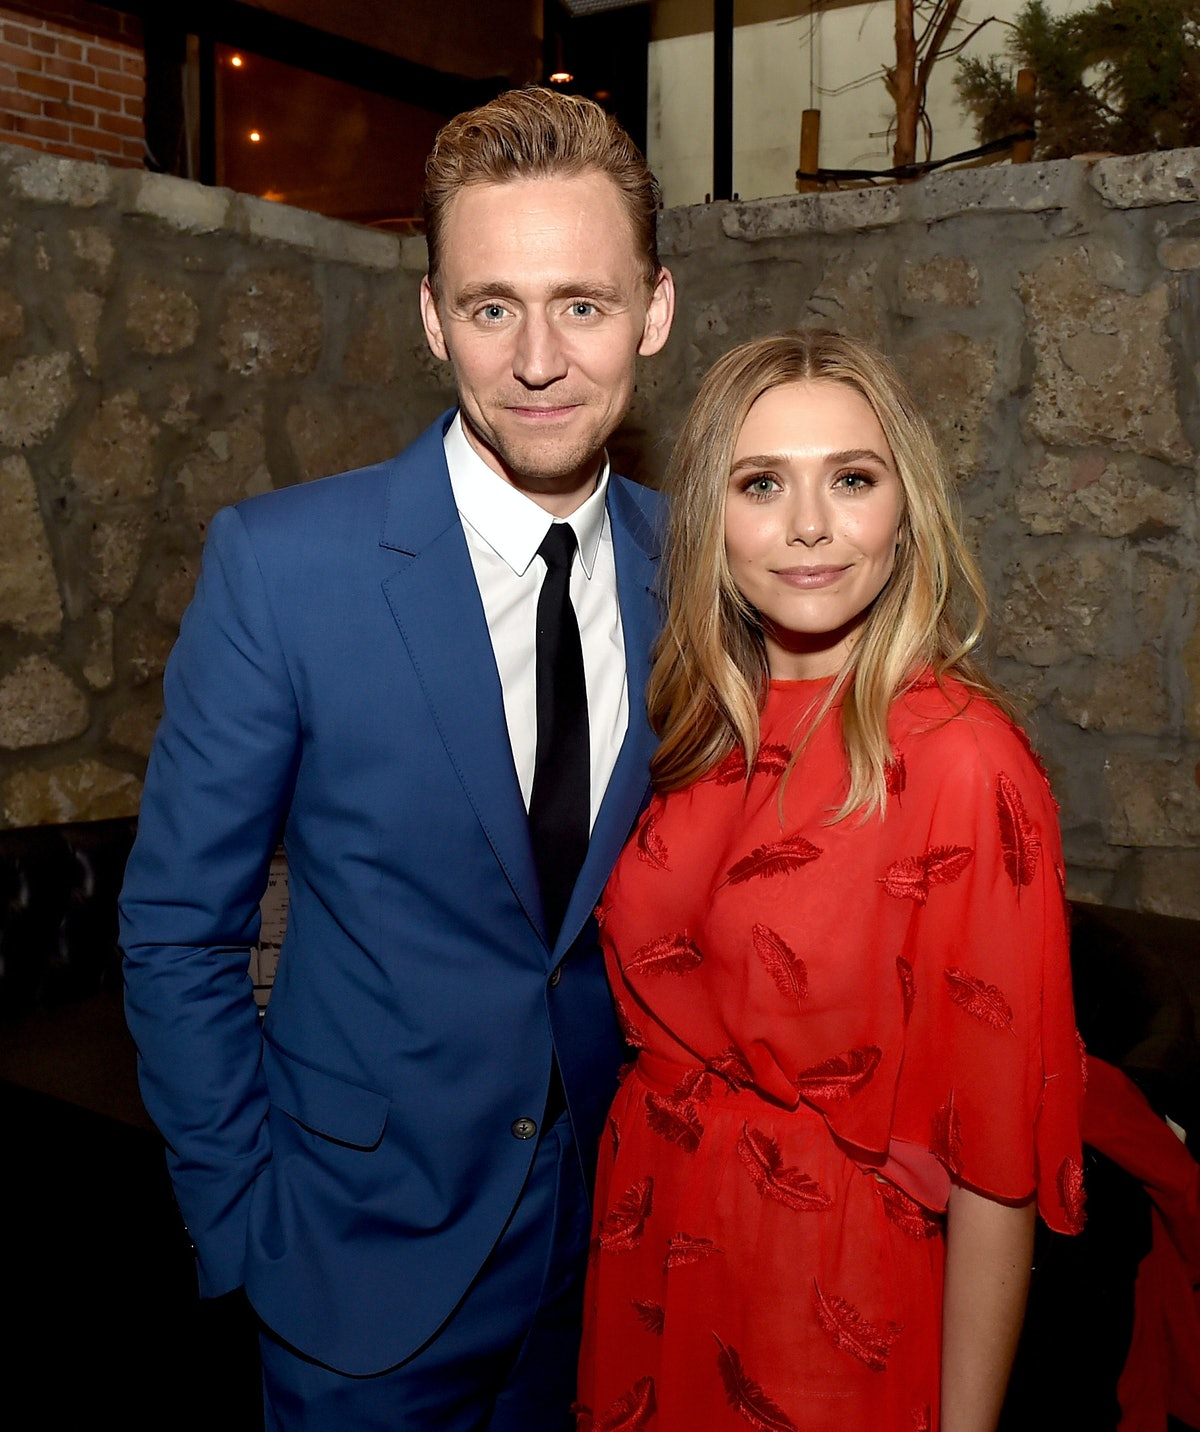 LOS ANGELES, CA - MARCH 22:  Actors Tom Hiddleston (L) and Elizabeth Olsen pose at the after party f...